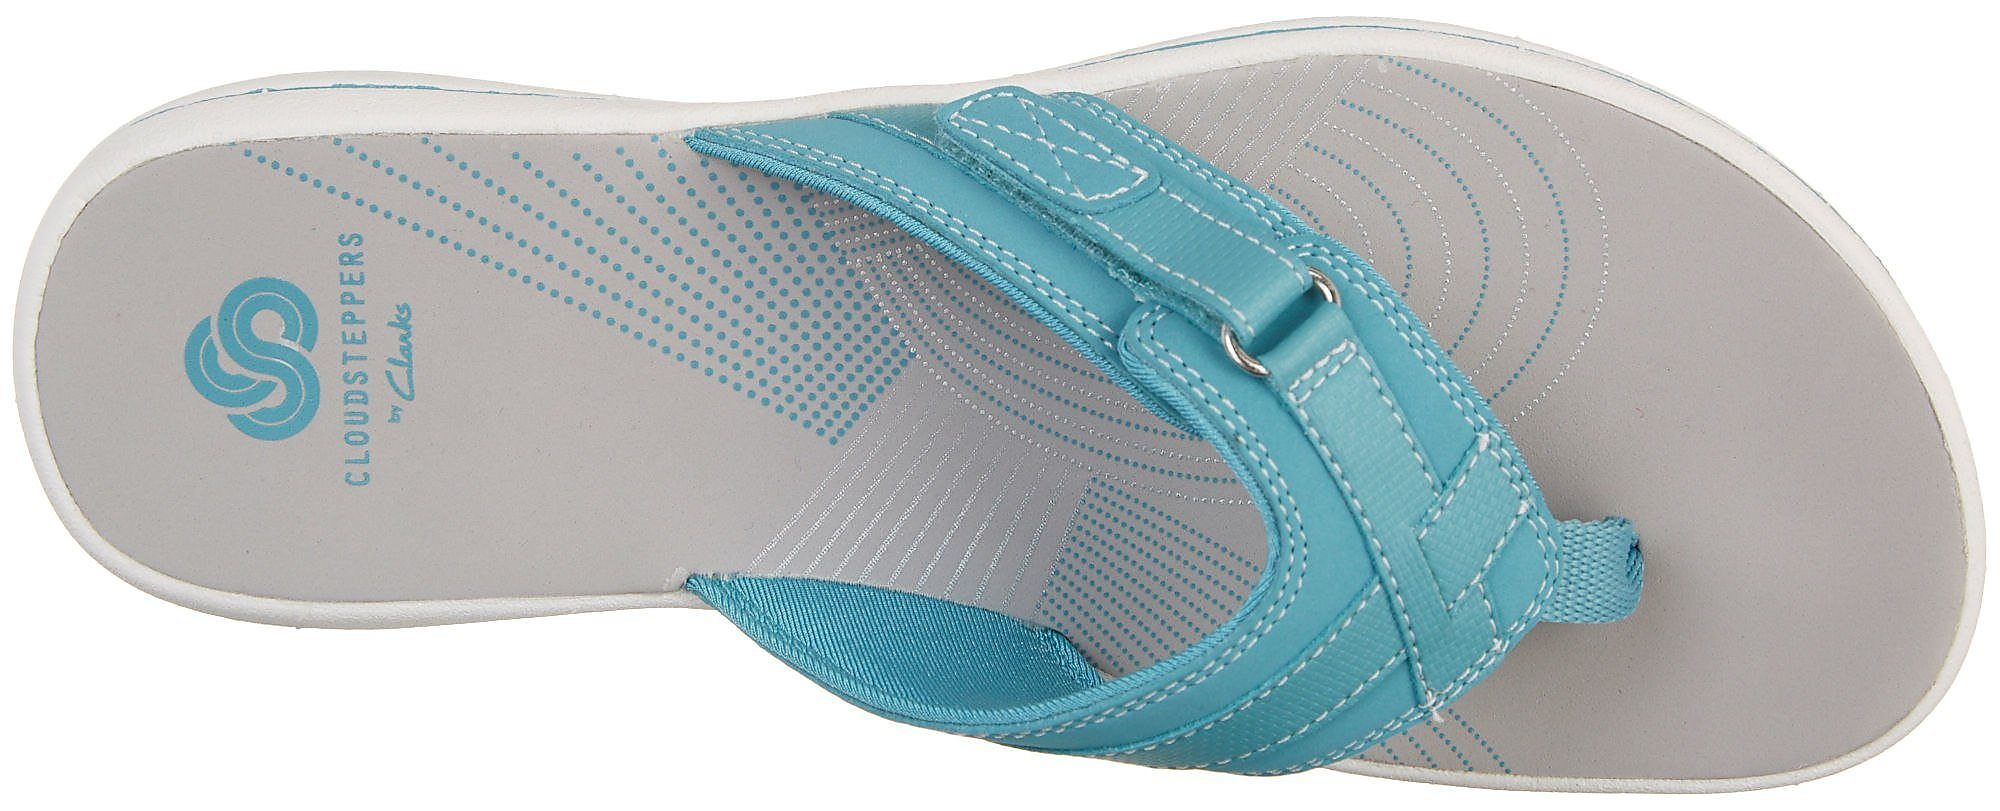 Clarks-Womens-Breeze-Sea-Flip-Flops-Comfort-Summer-Sandals thumbnail 3